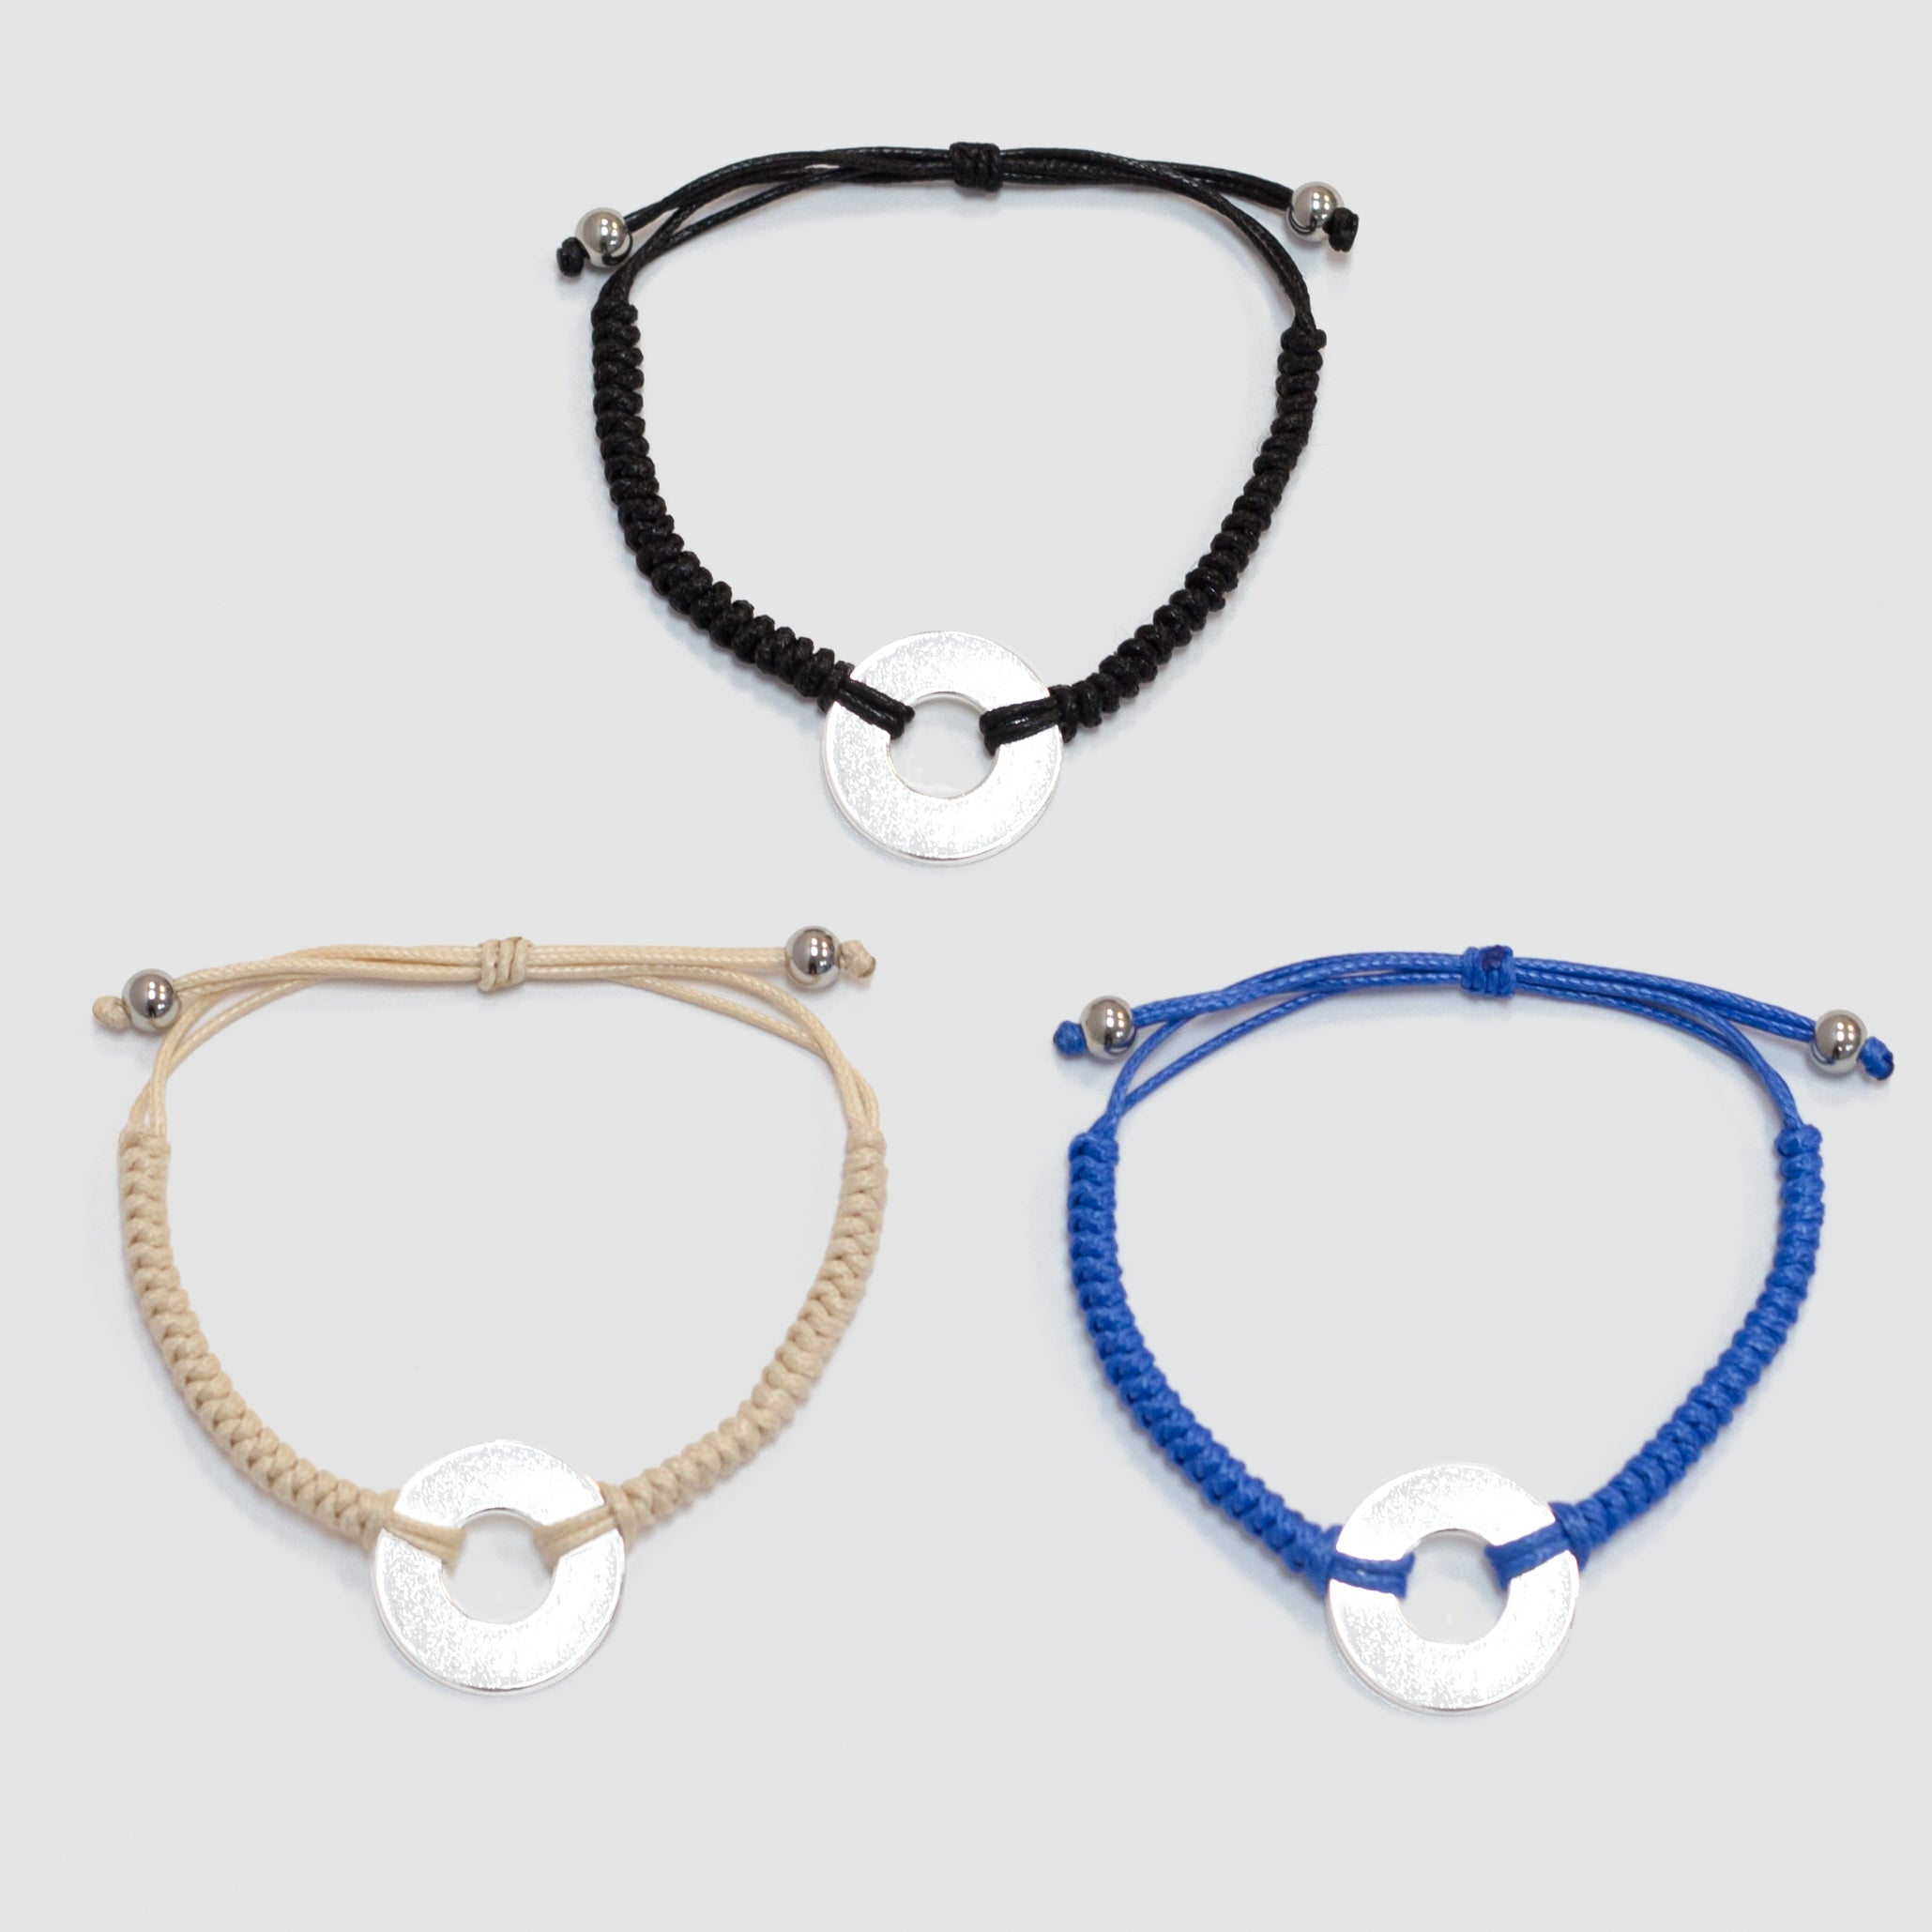 MyIntent Refill Round Bracelets in Black, Blue, and Cream with Silver Tokens